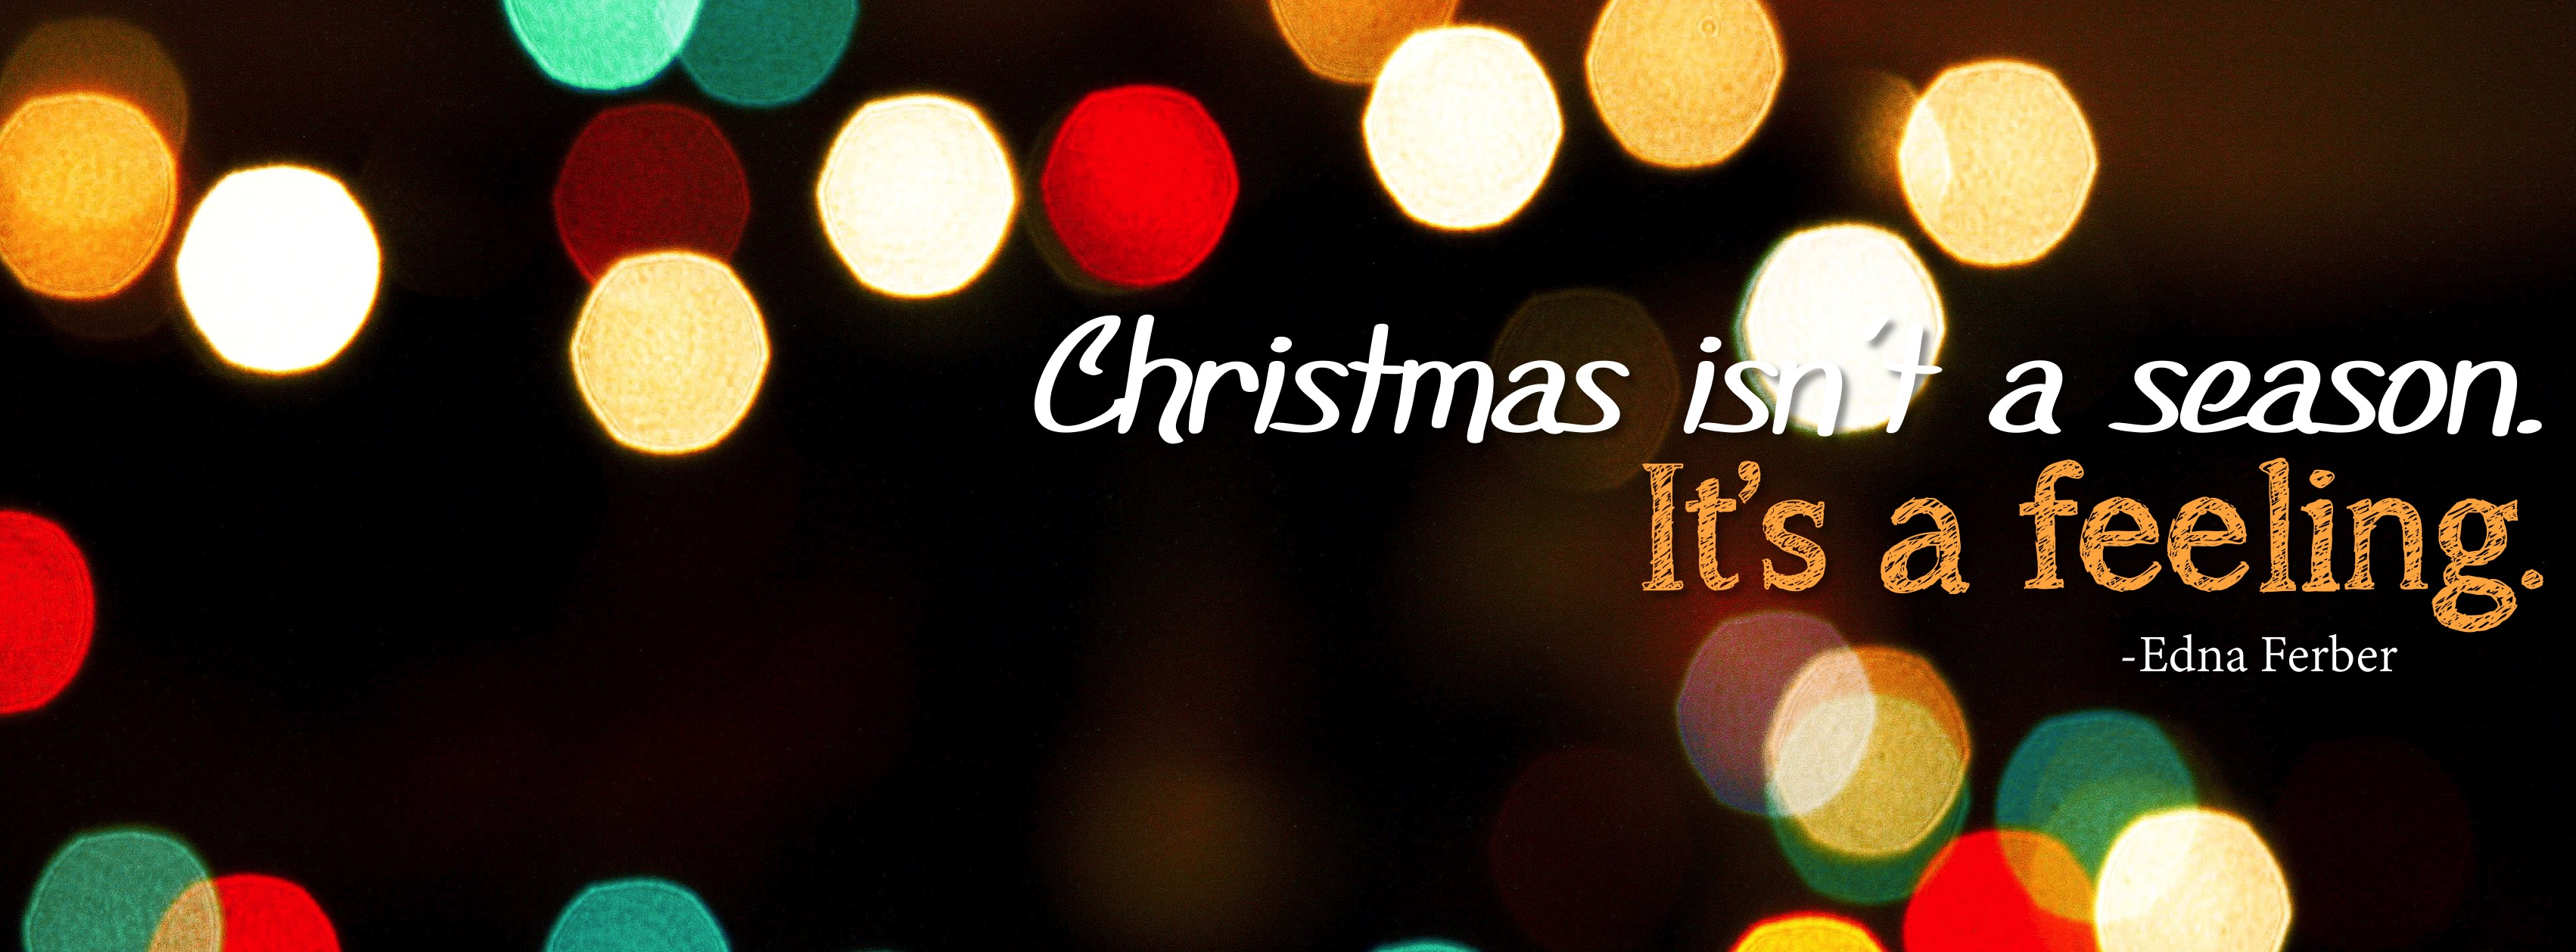 Free Christmas Facebook Cover Photo Downloads - Blair Blogs